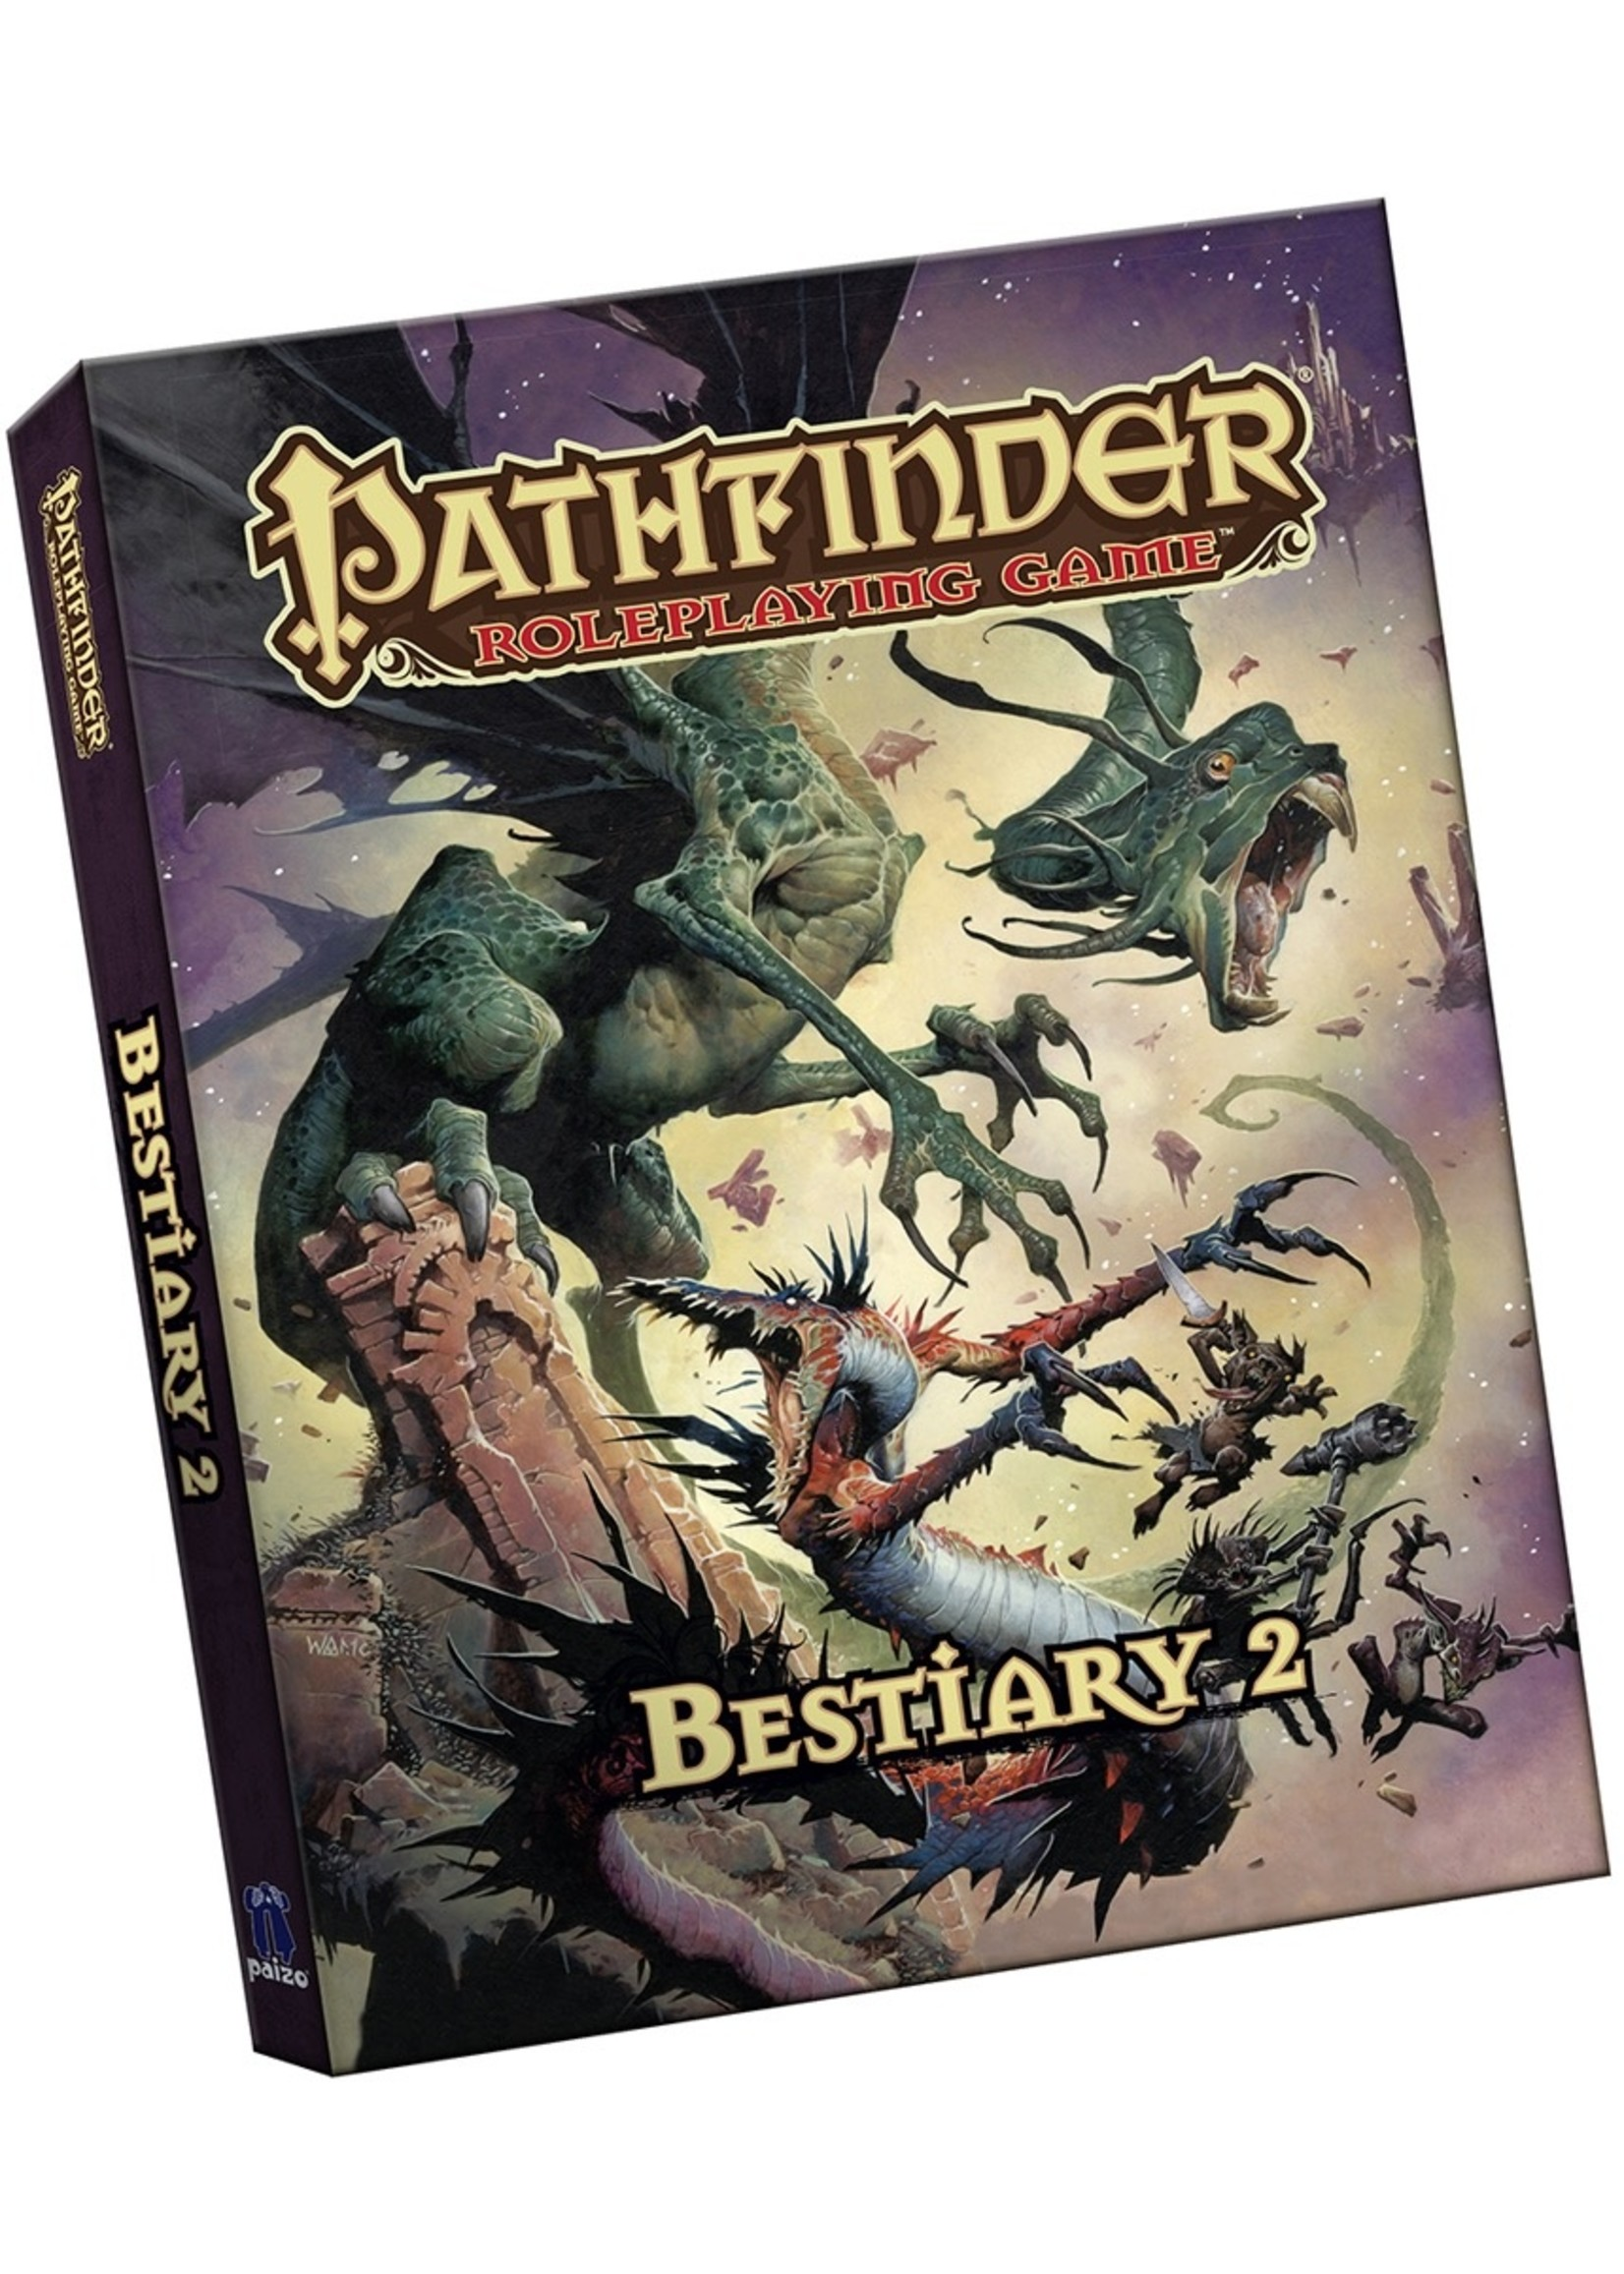 Pathfinder RPG: Bestiary 2 (Pocket Edition)